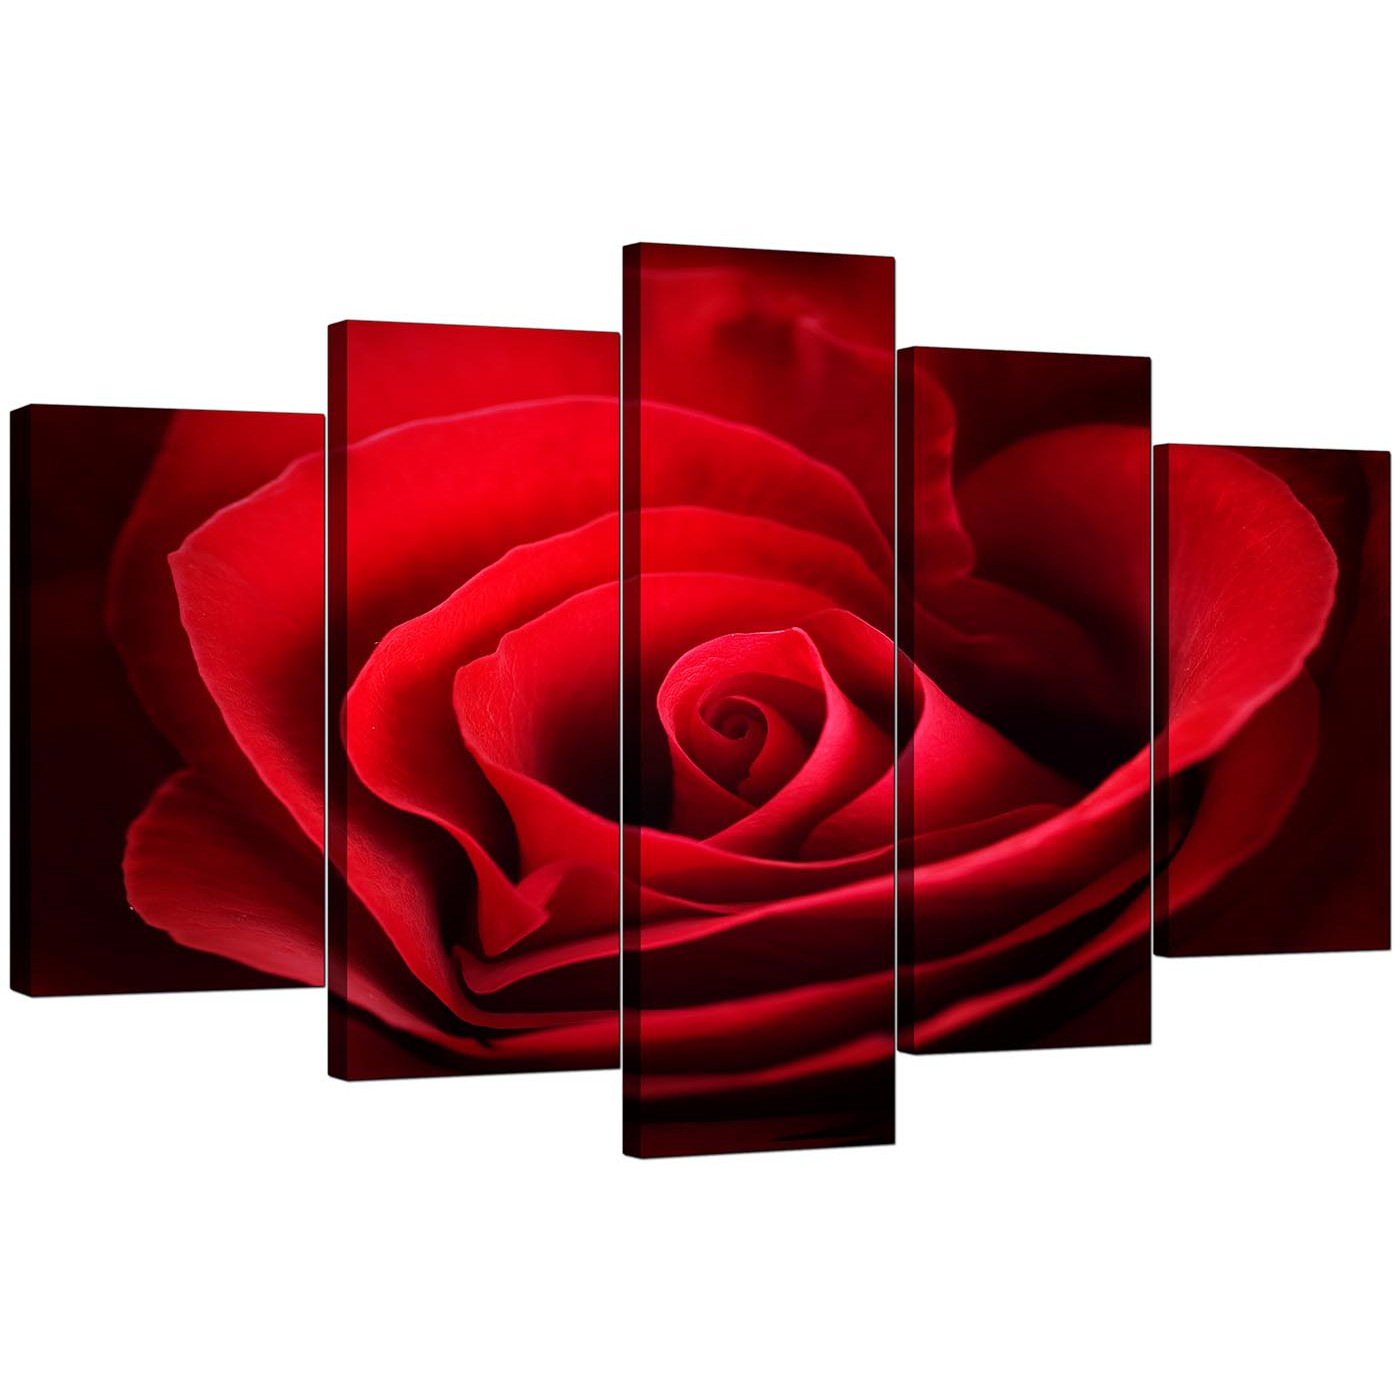 Extra large rose canvas wall art 5 panel in red for Red wall art